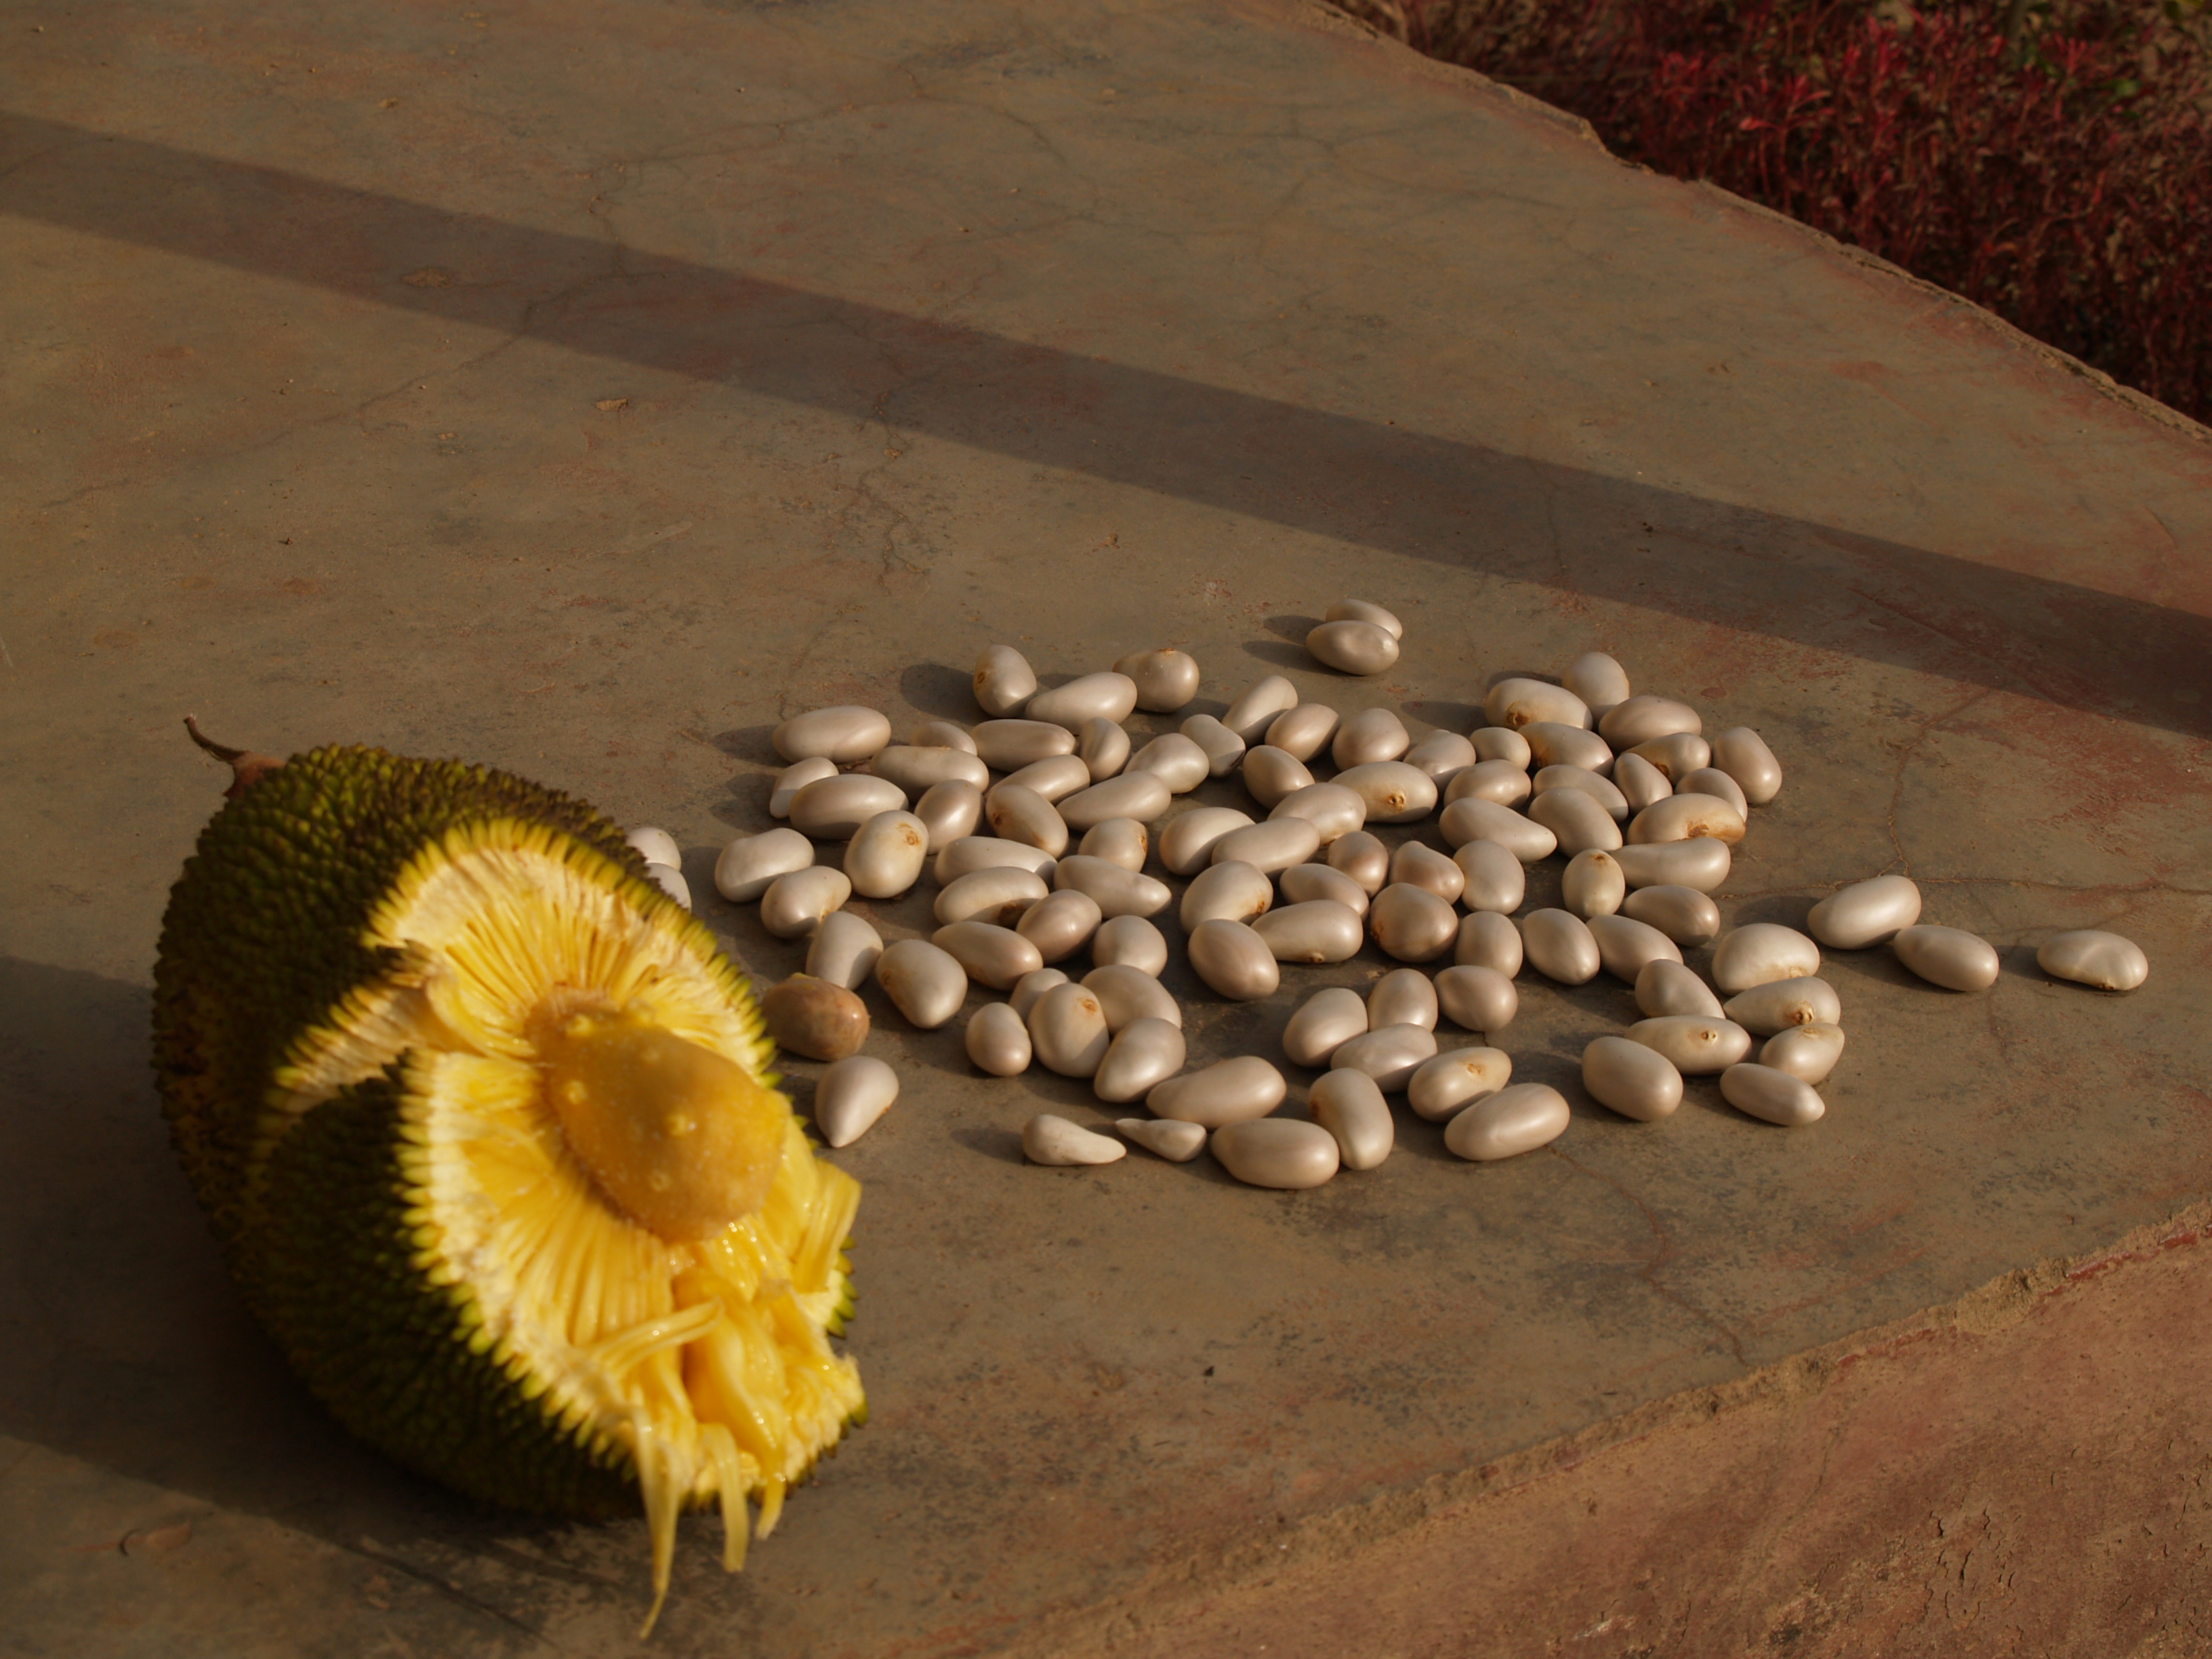 Breadfuit seeds and pulp